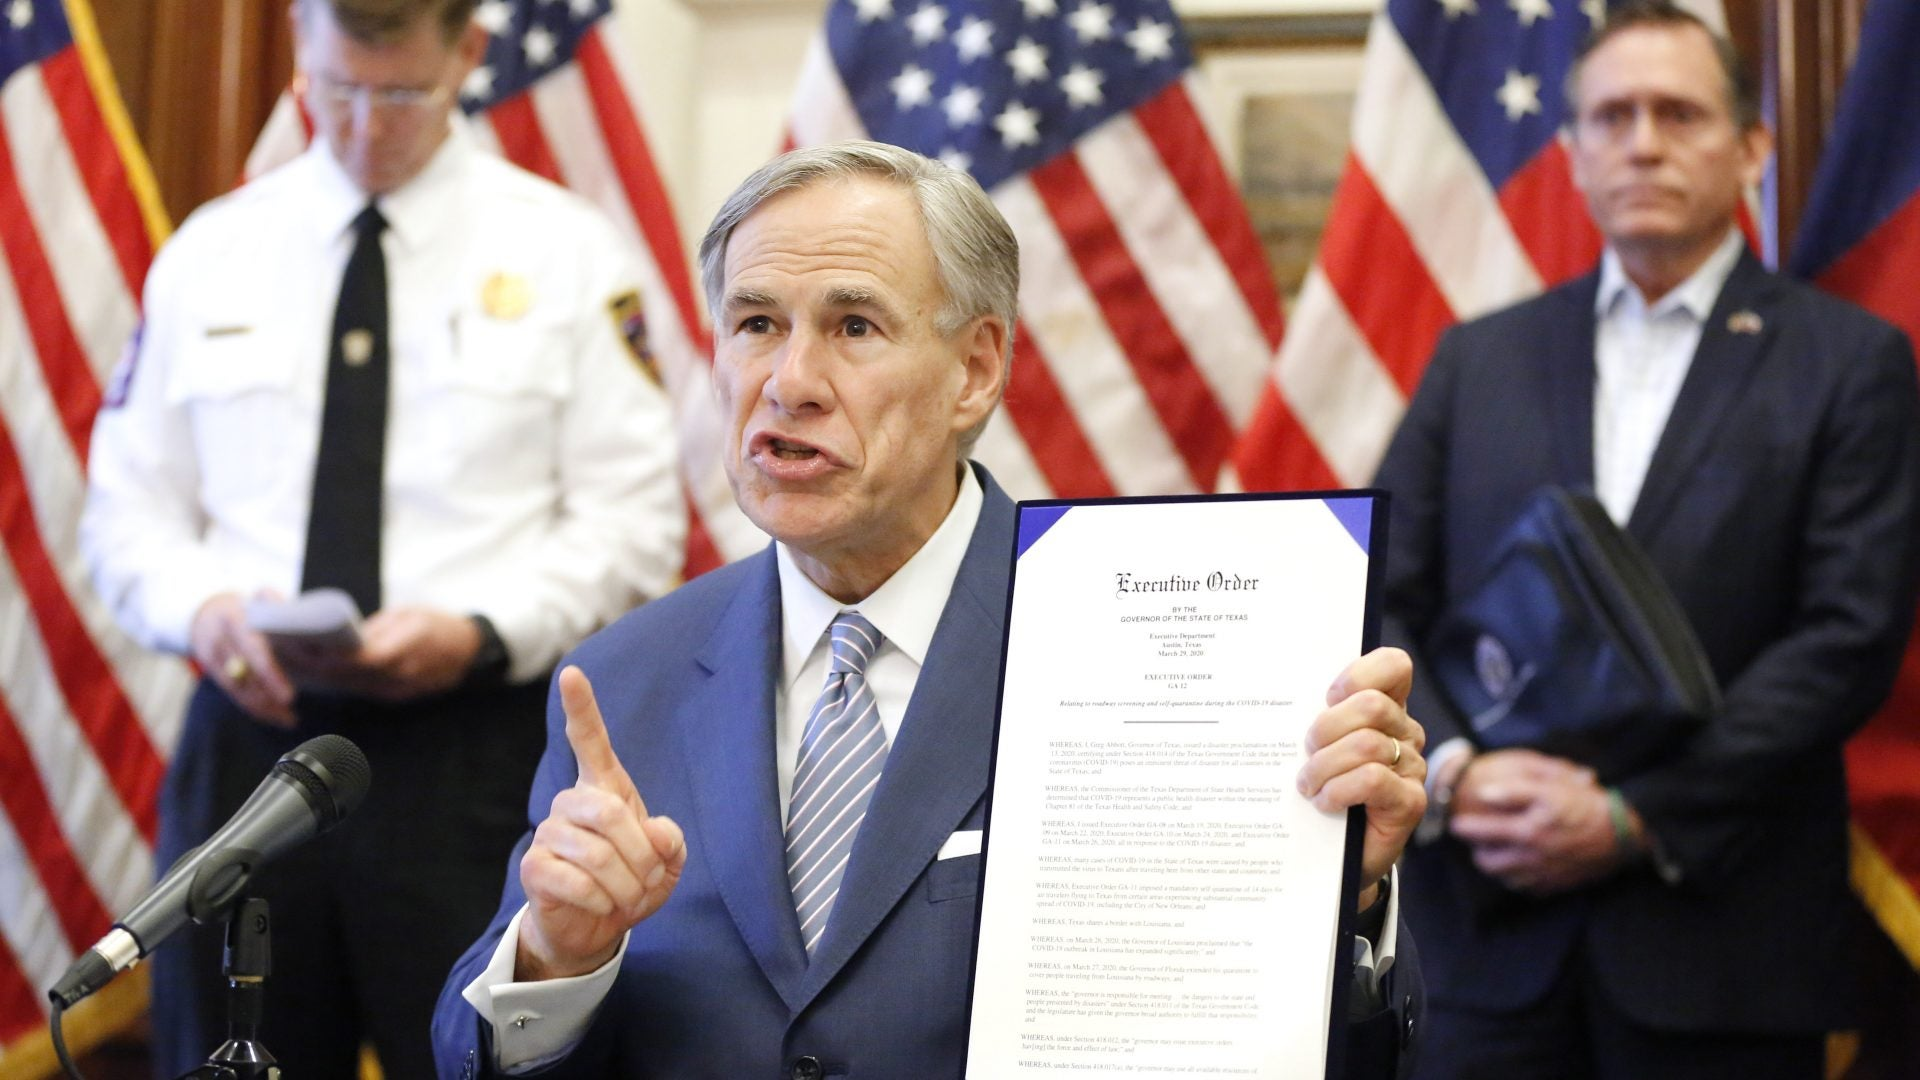 Texas Gov. Admits Reopening Risks Increased Spread Of Virus In Leaked Call